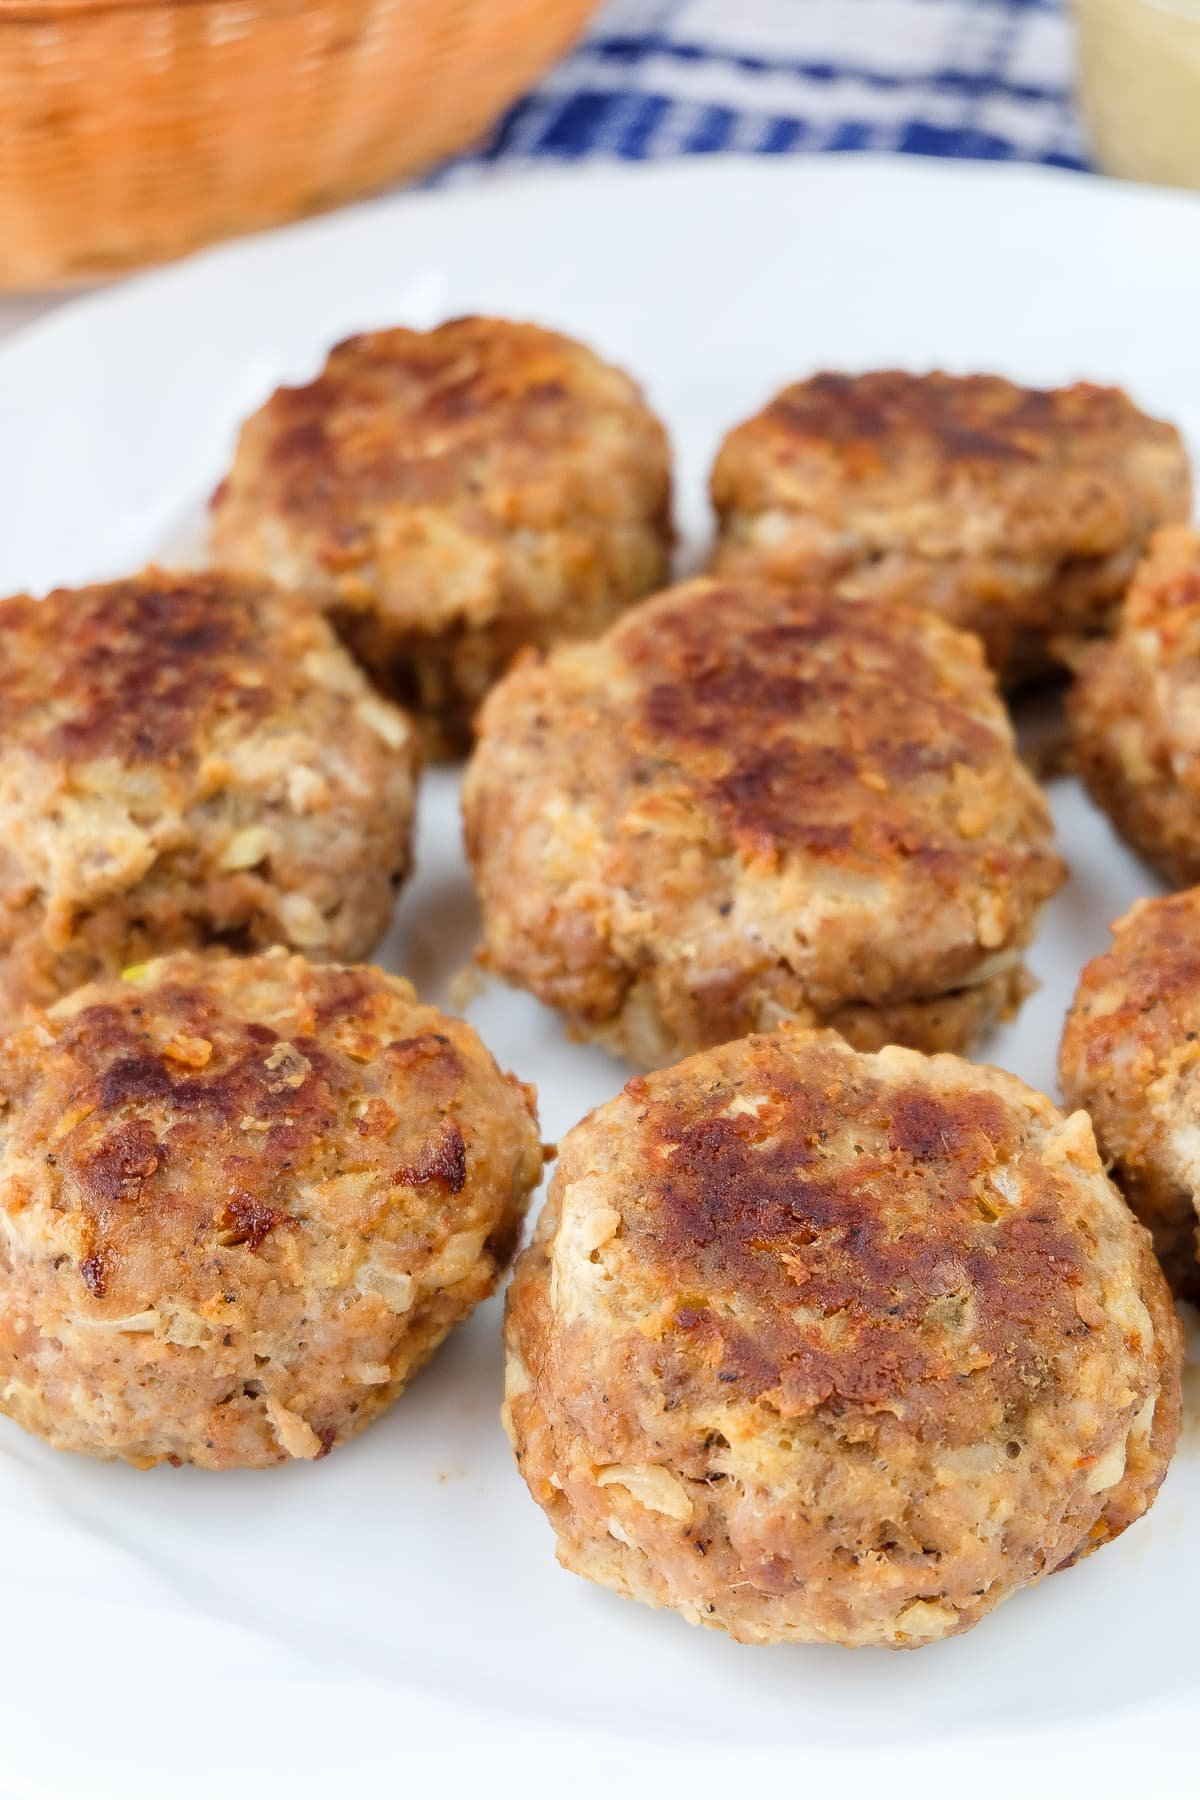 fried german meatballs arranged on white plate with mustard behind